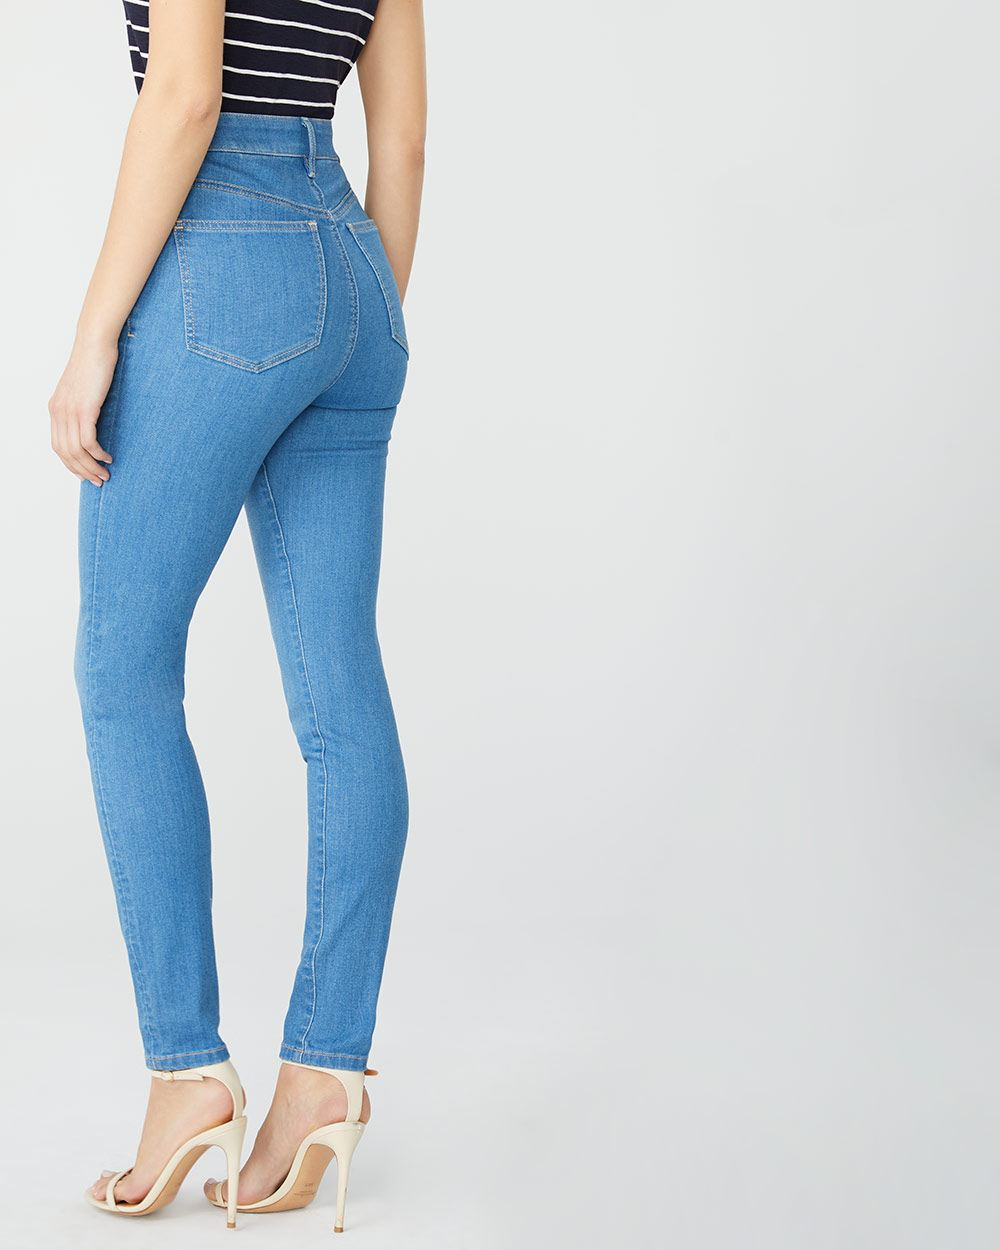 High-rise Curvy fit skinny jeans in Light blue wash